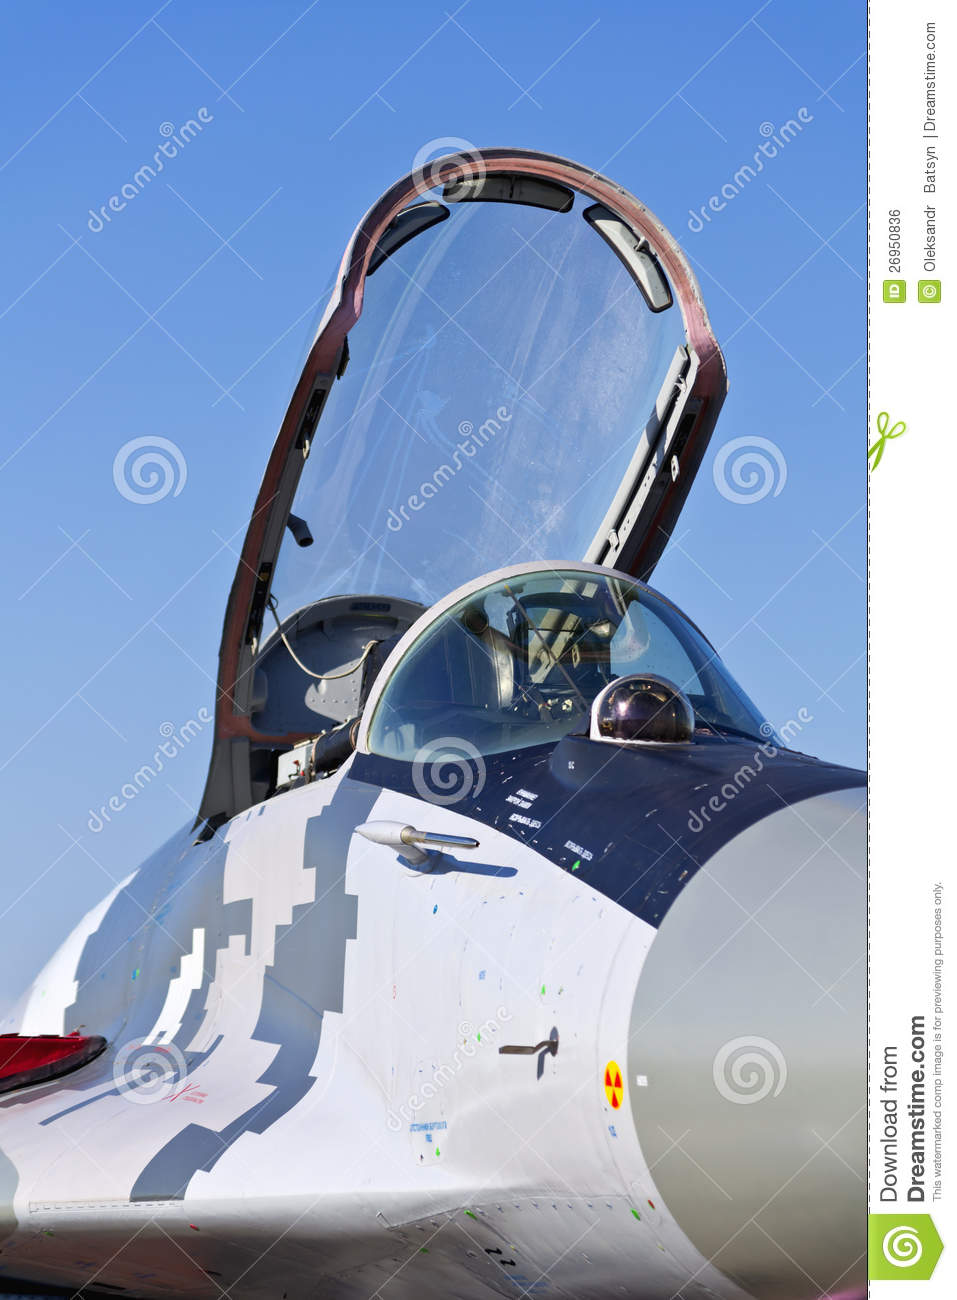 Mikoyan MIG-29 Fighter Cockpit  Editorial Photo - Image of malaysian